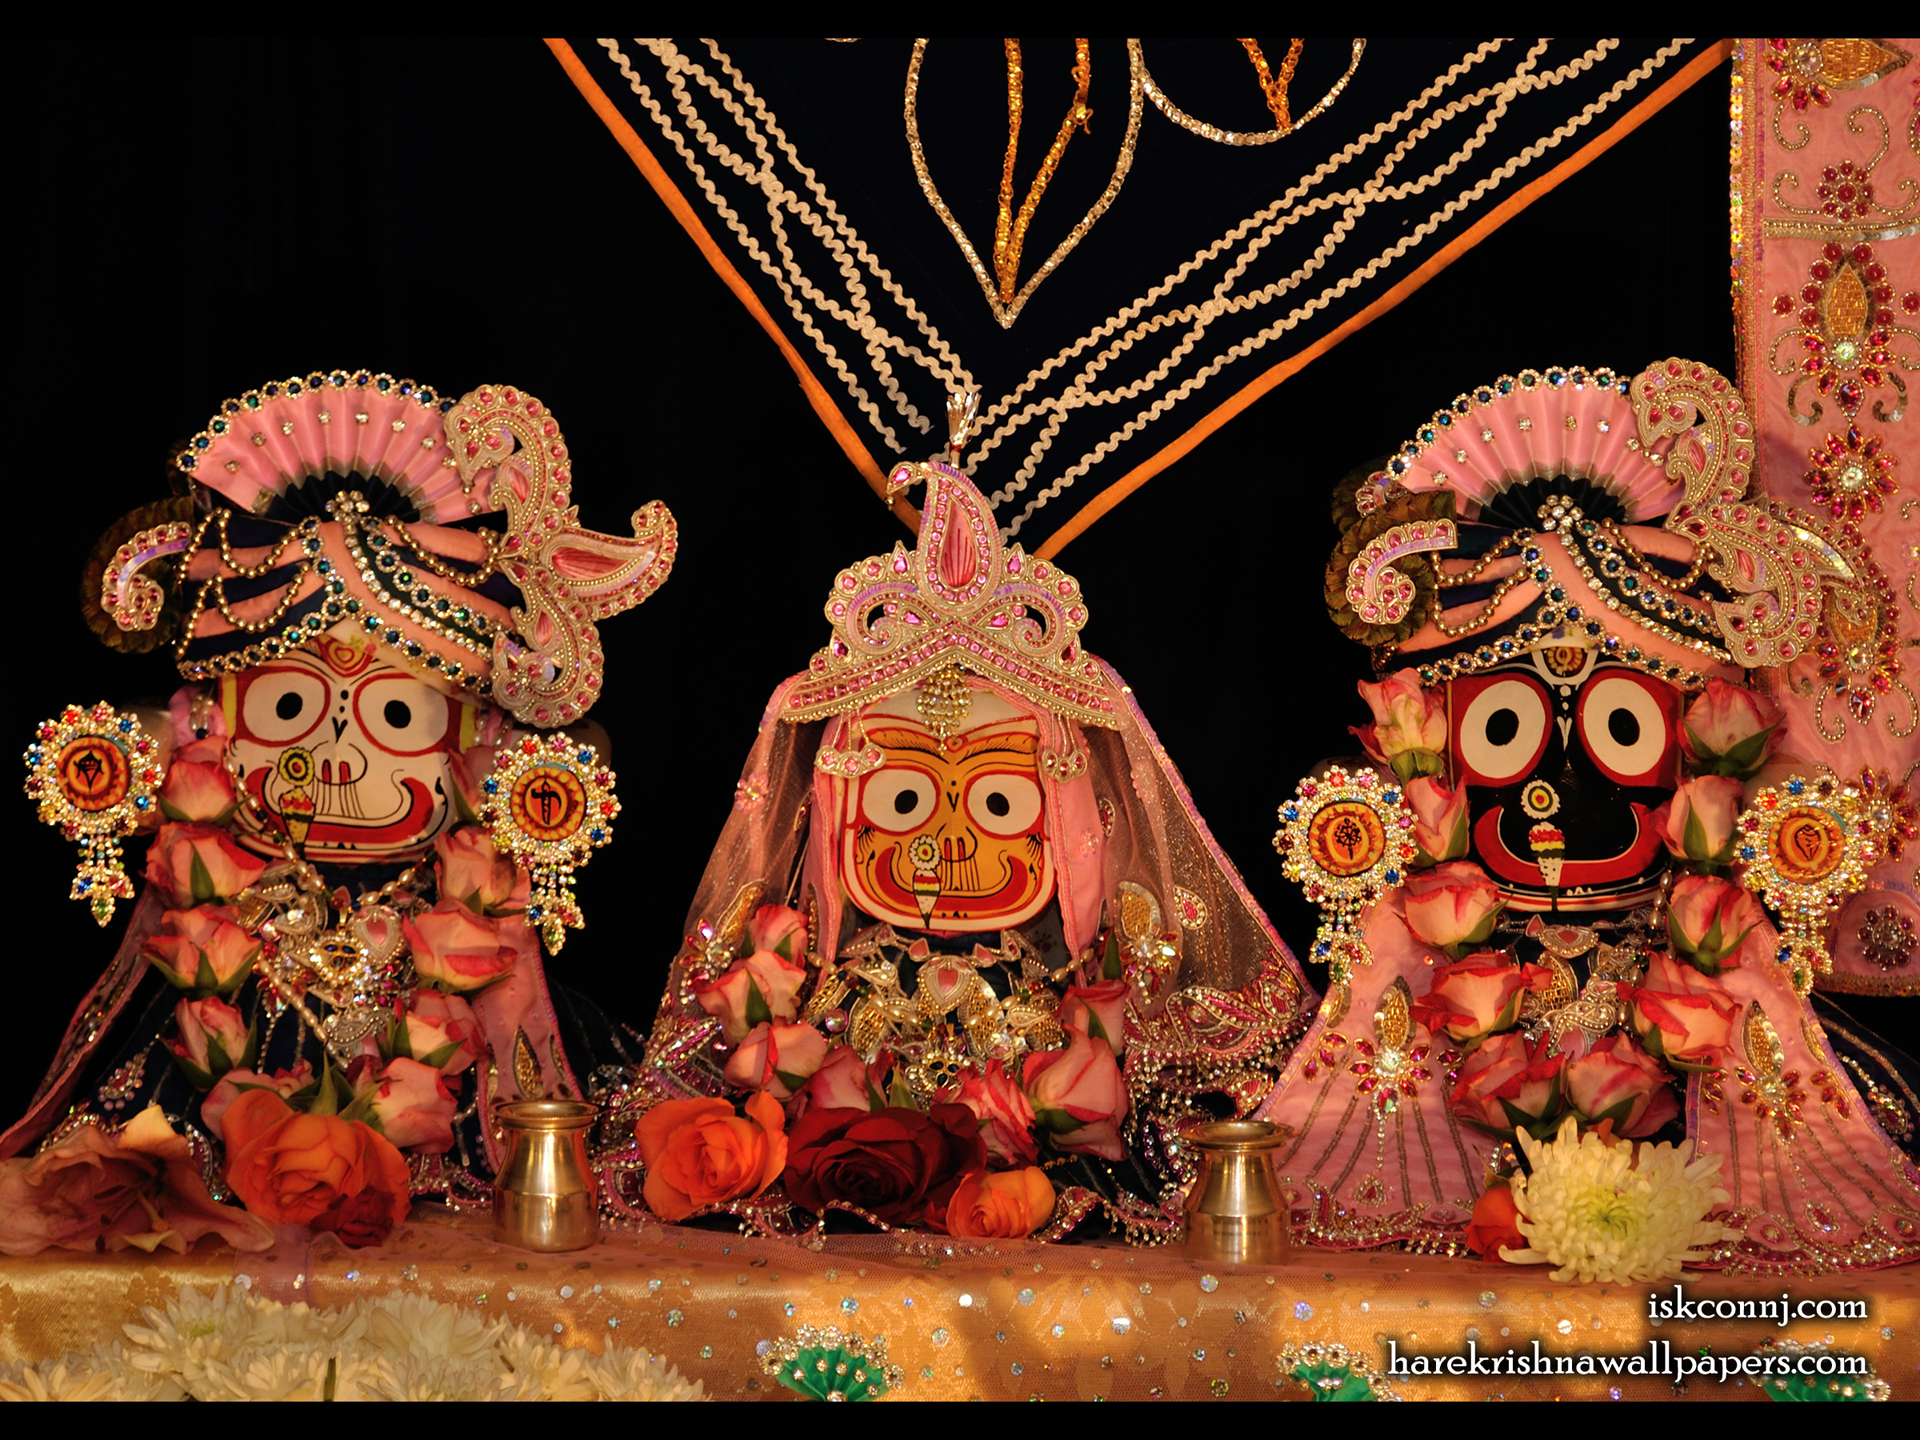 Jagannath Baladeva Subhadra Wallpaper (005) Size 1920x1440 Download